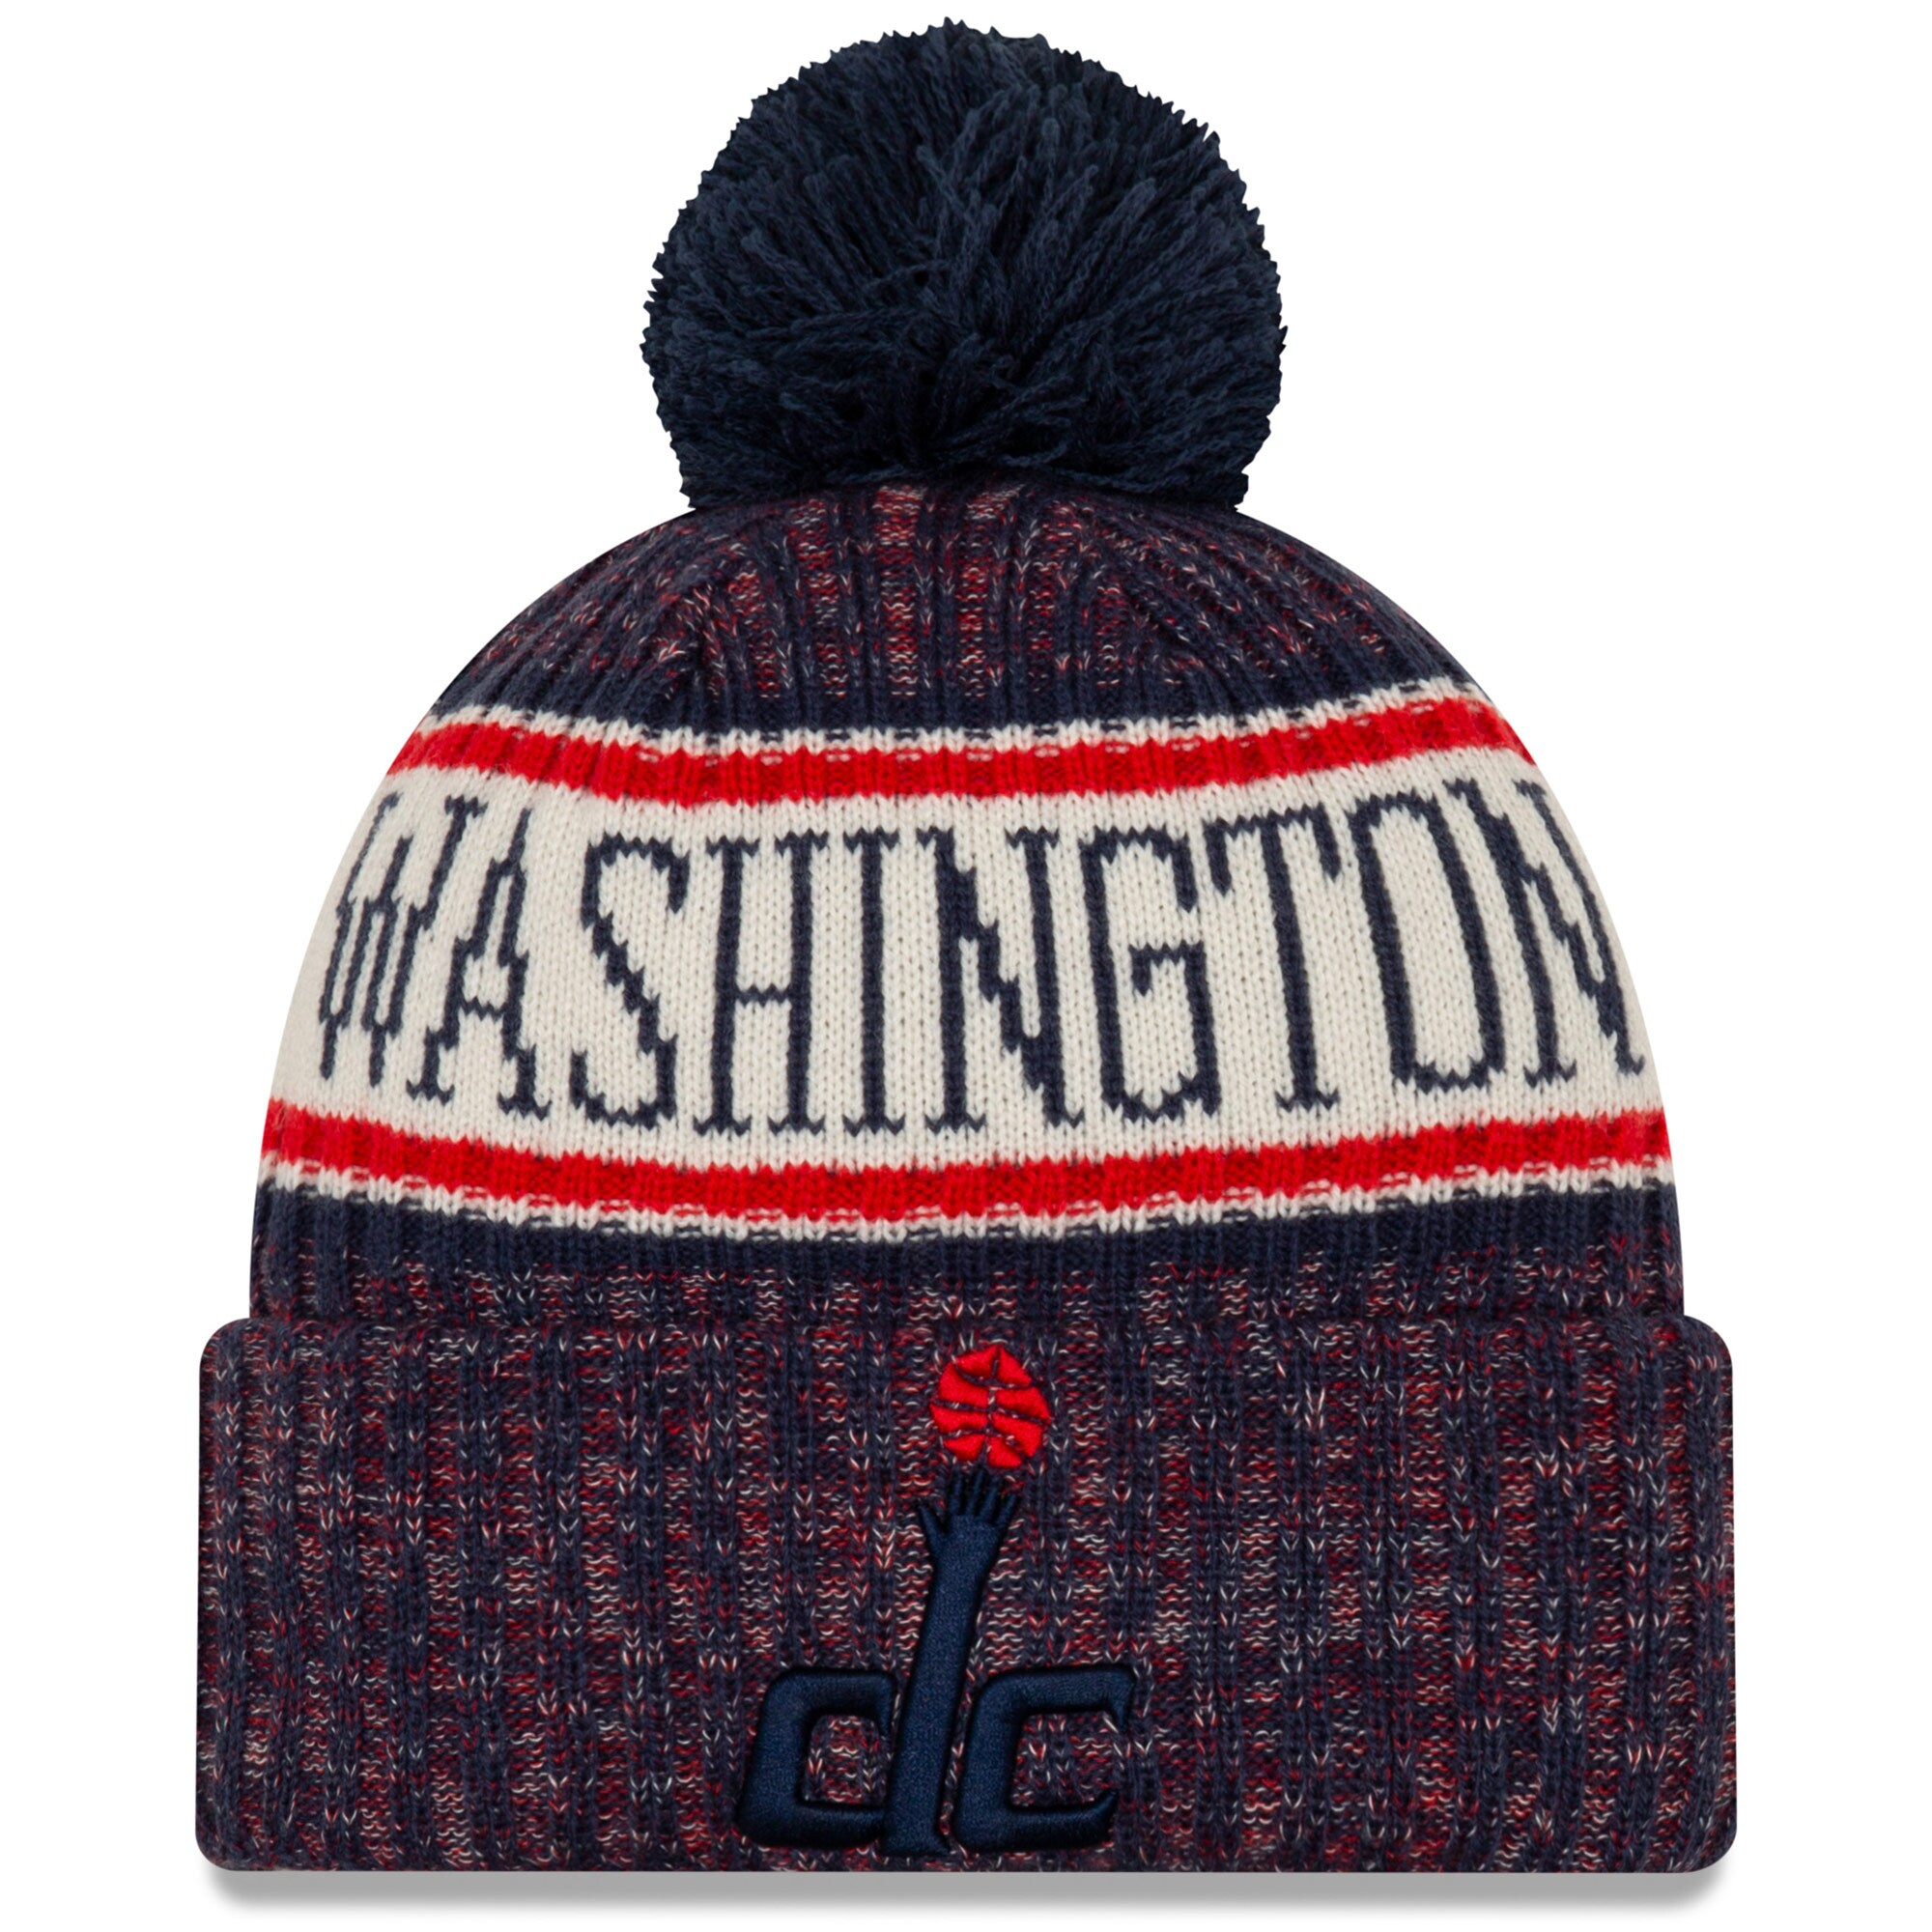 Washington Wizards New Era Sport Cuffed Knit Hat with Pom - Navy